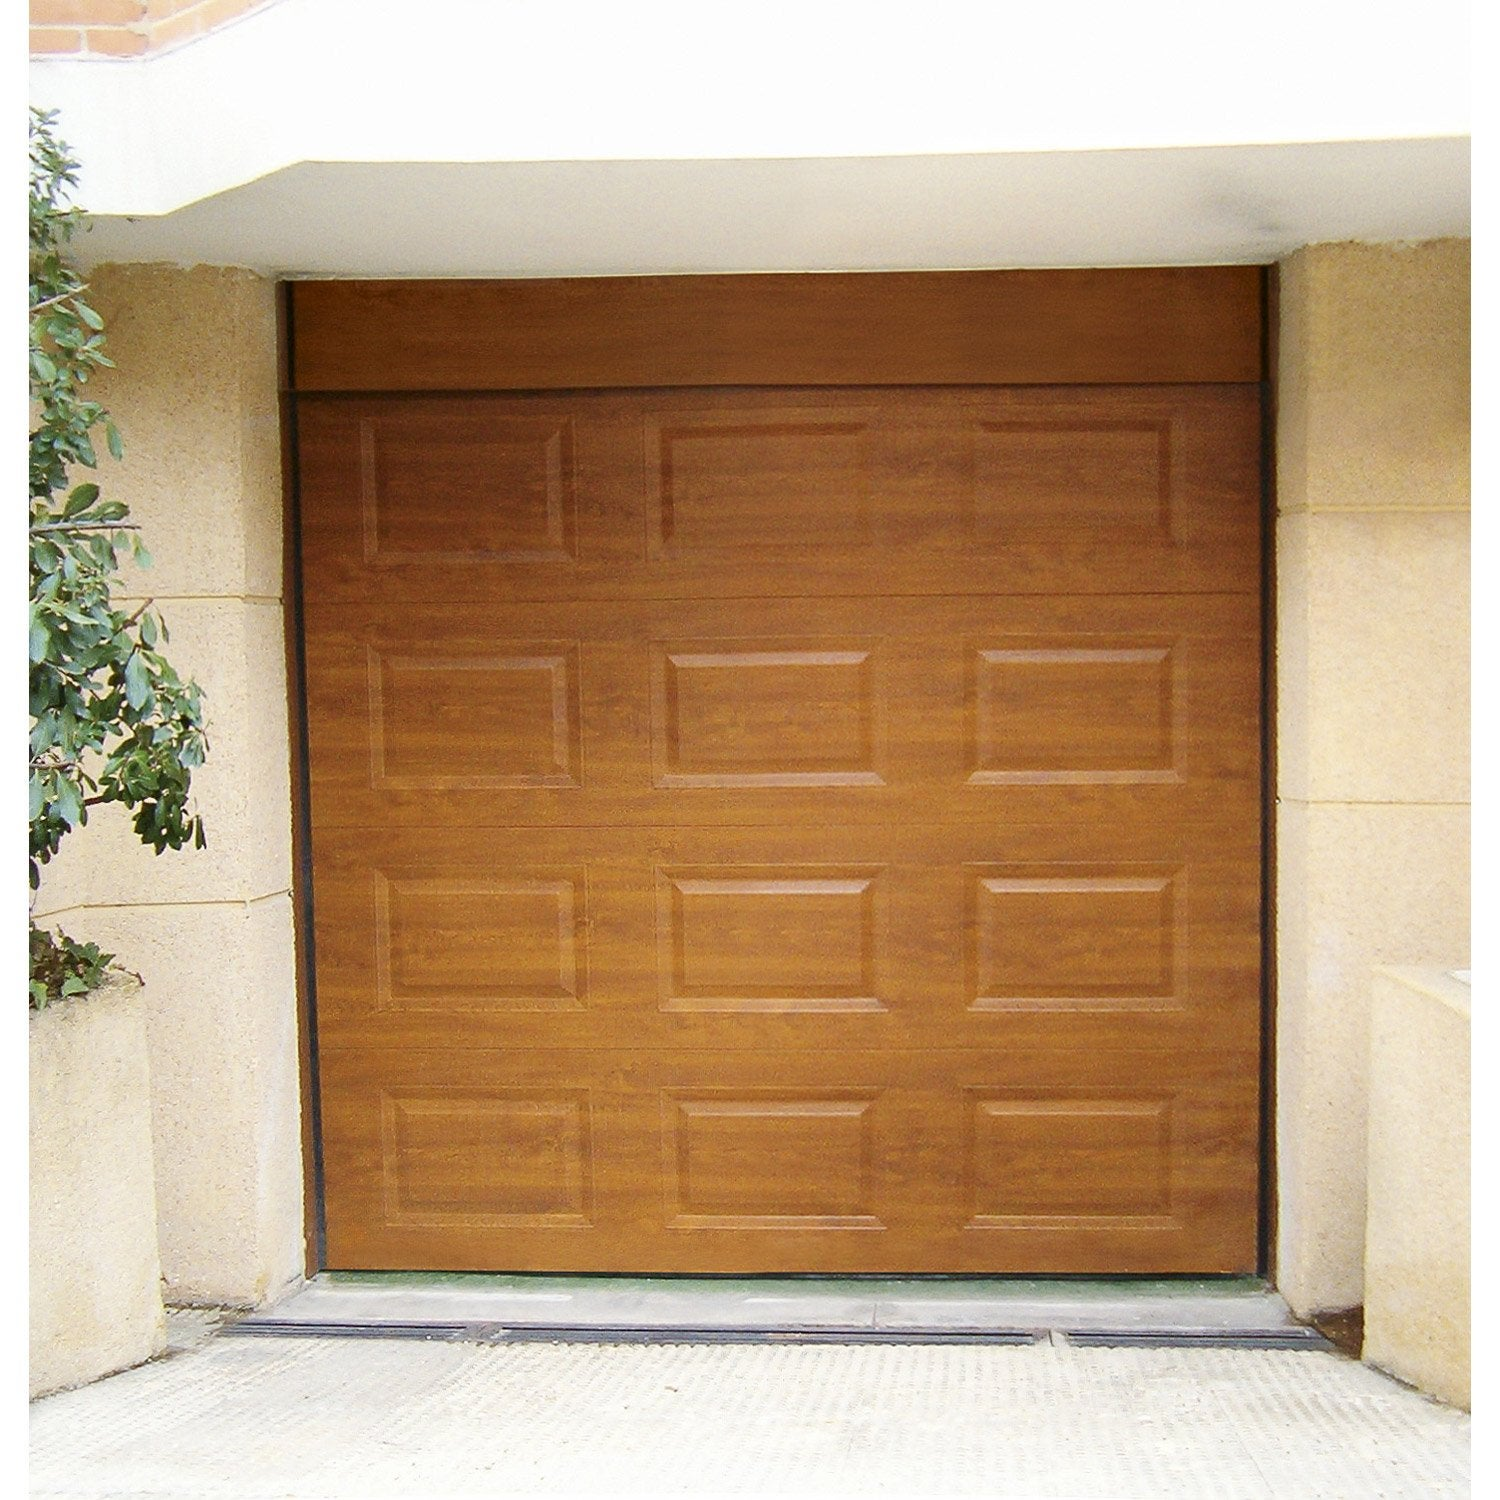 Porte sequentielle garage maison design for Porte sectionnelle garage 3m